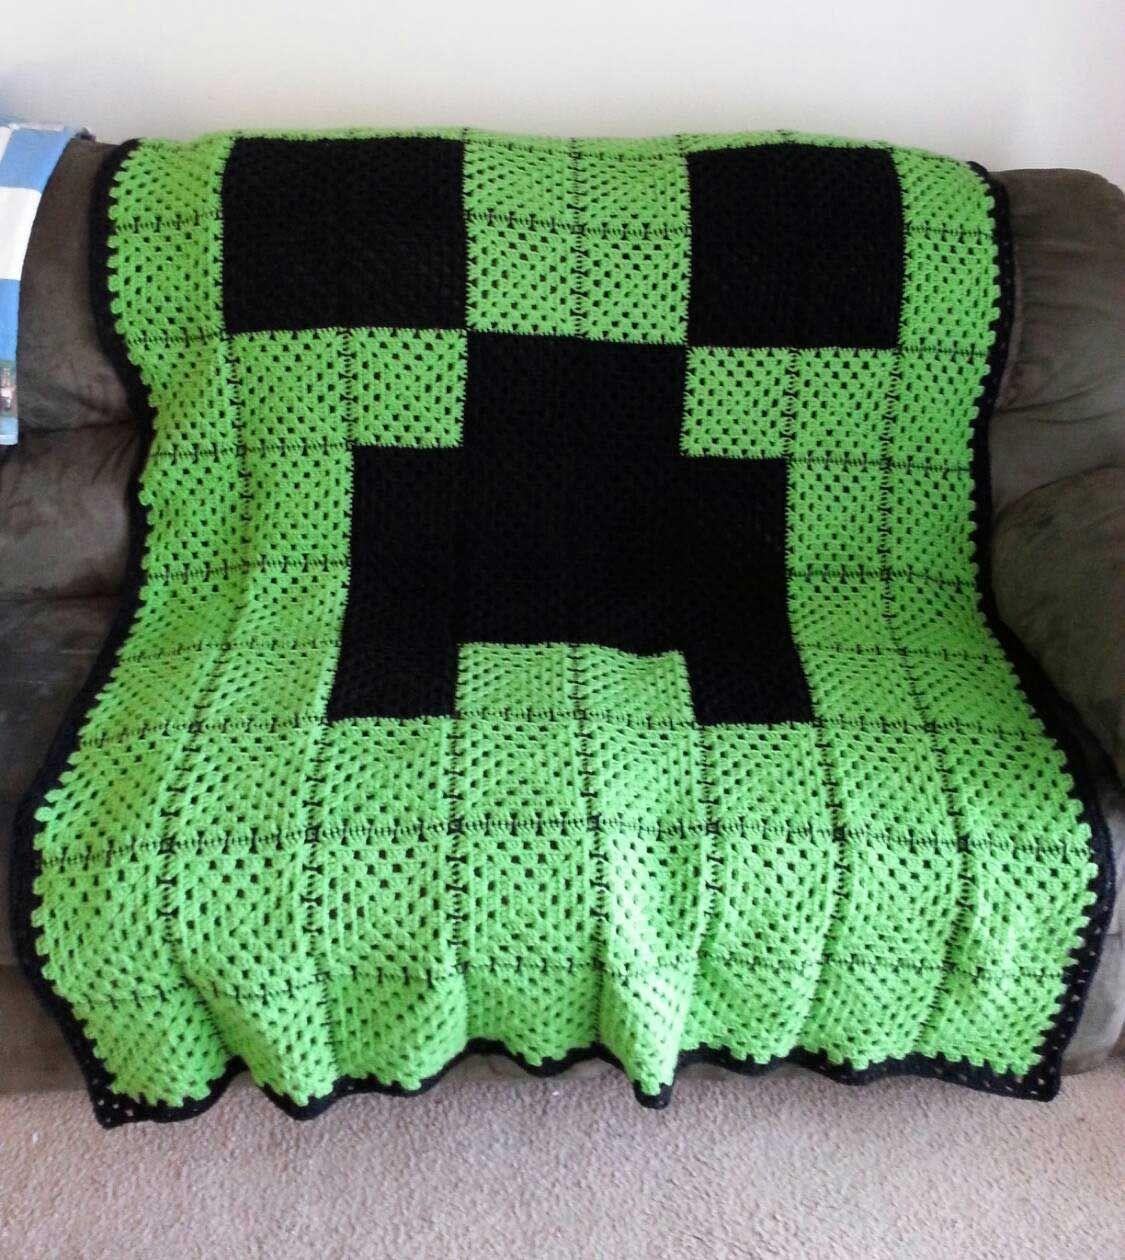 Minecraft Creeper Crochet Blanket | DIY | Pinterest | Handarbeiten